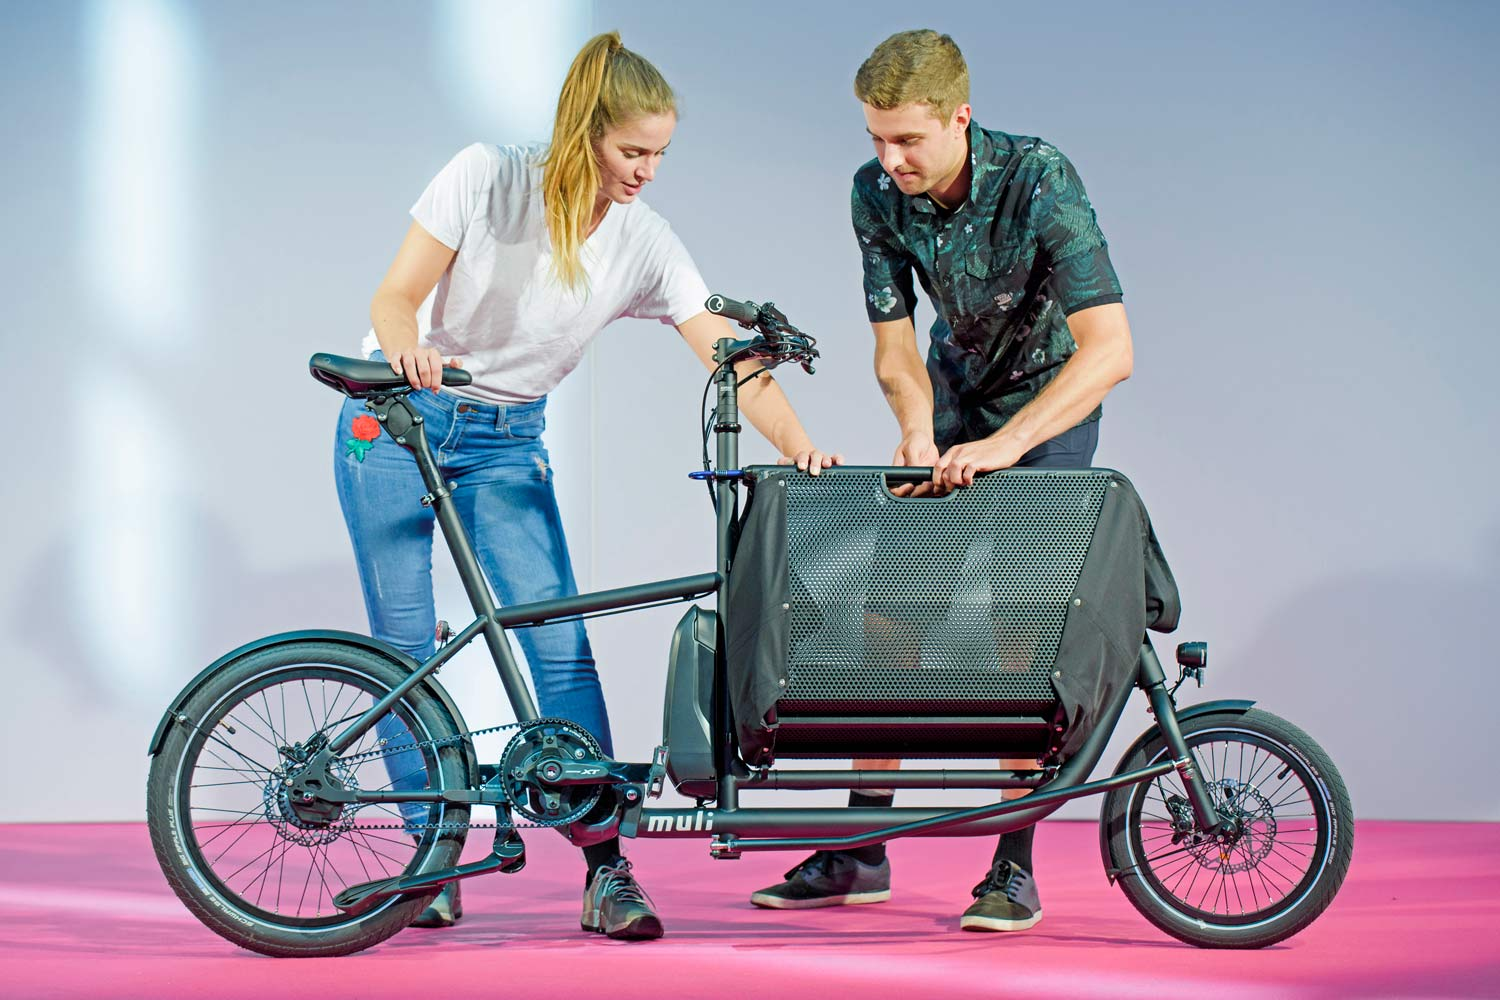 Eurobike 2019 - What's to come? all images courtesy EUROBIKE Friedrichshafen